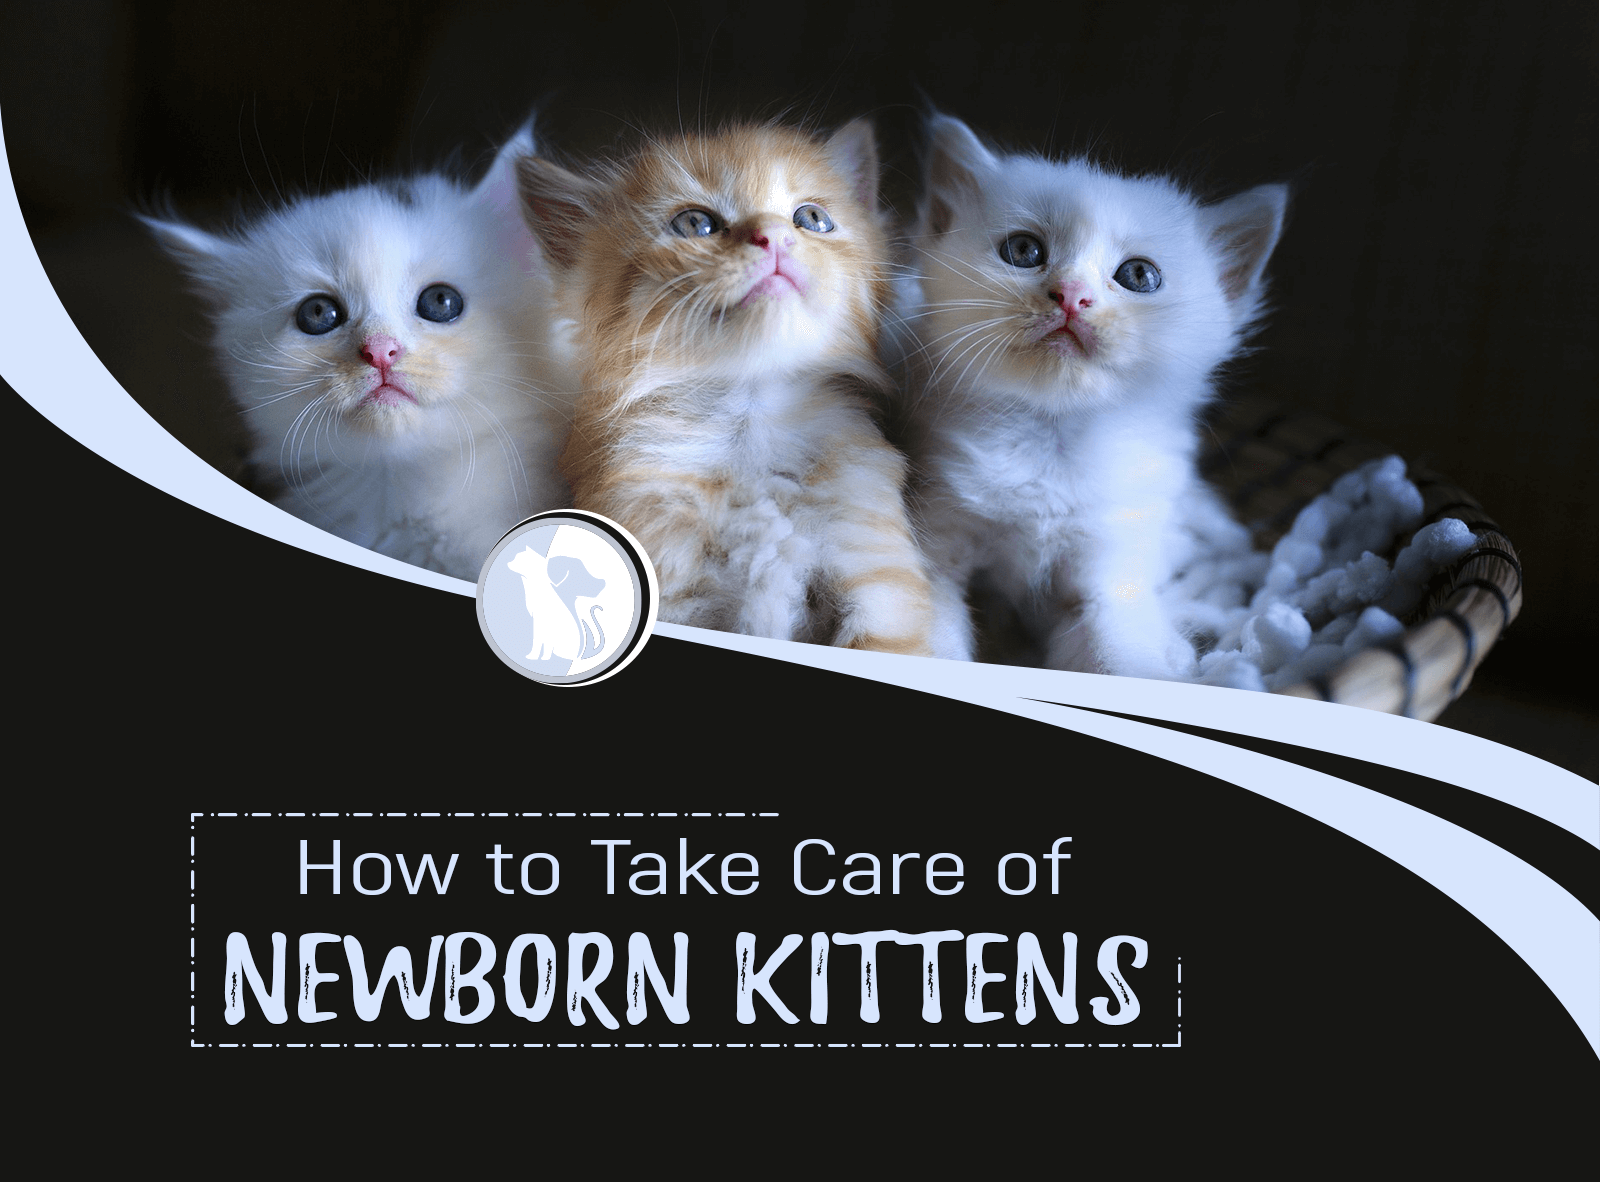 How to Take Care of Newborn Kittens